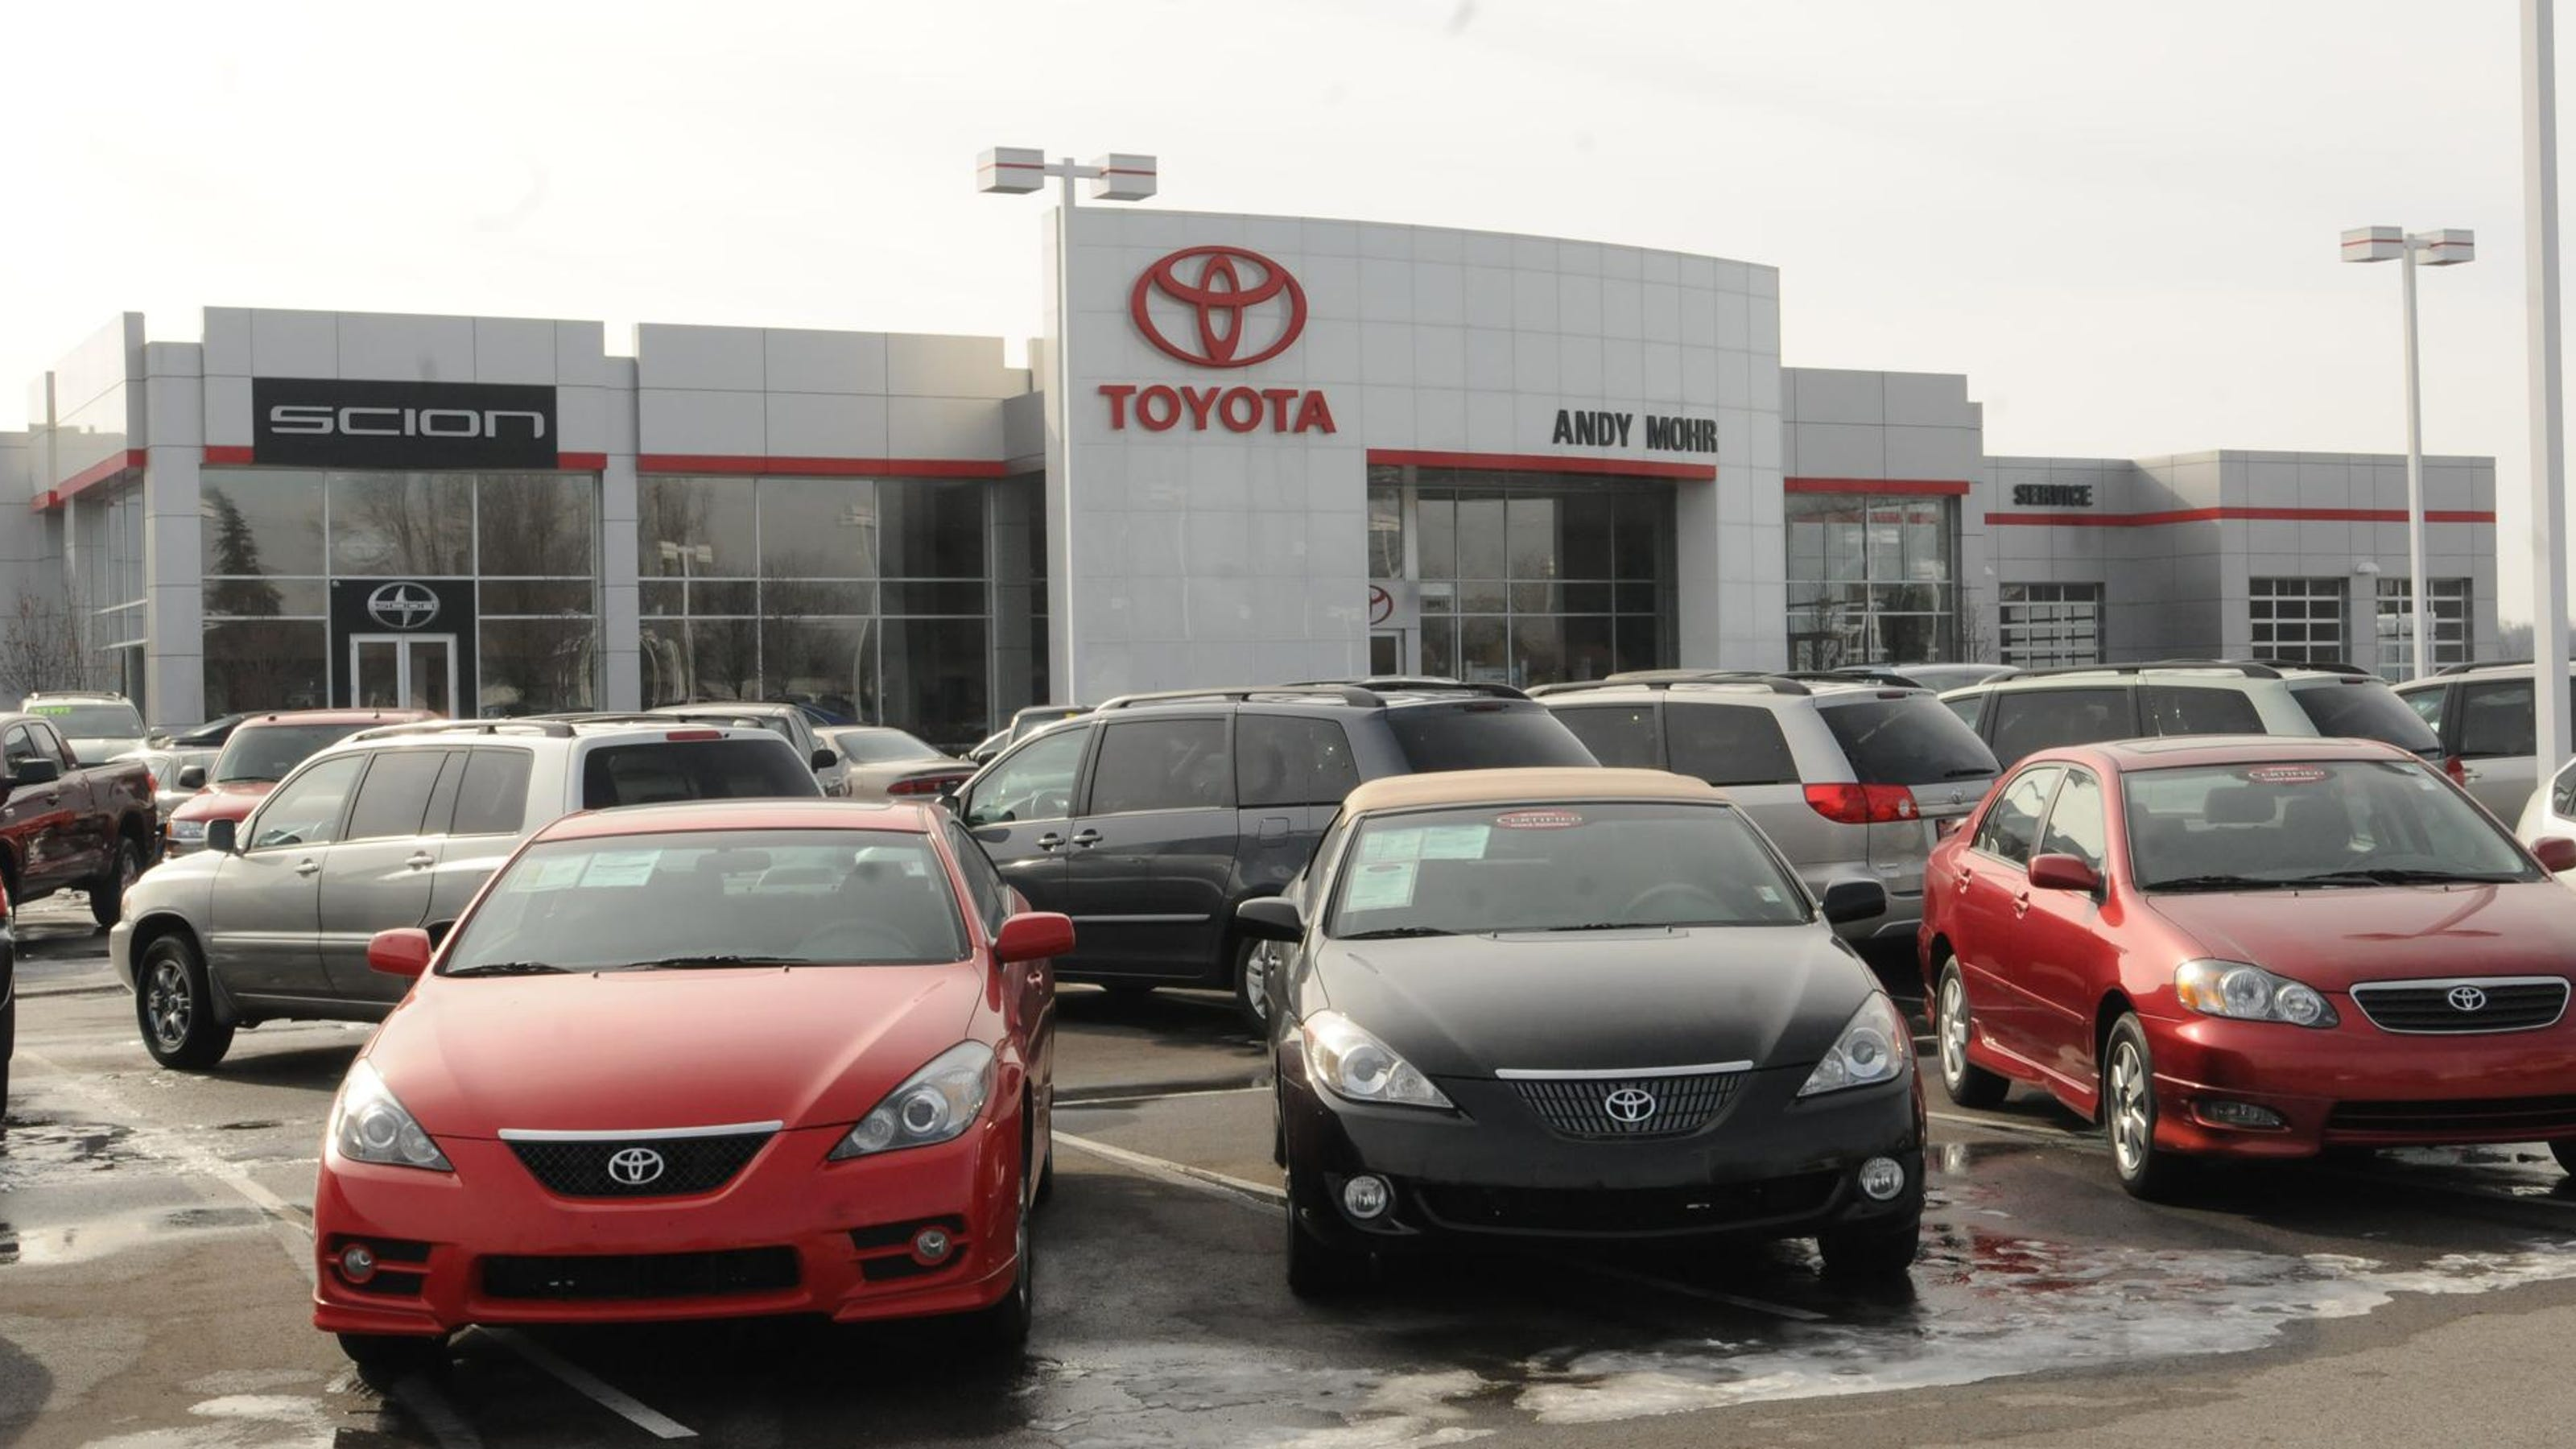 Toyota Dealership Indianapolis >> Appeals Court Halts Toyota Dealer S Move From Anderson To Noblesville